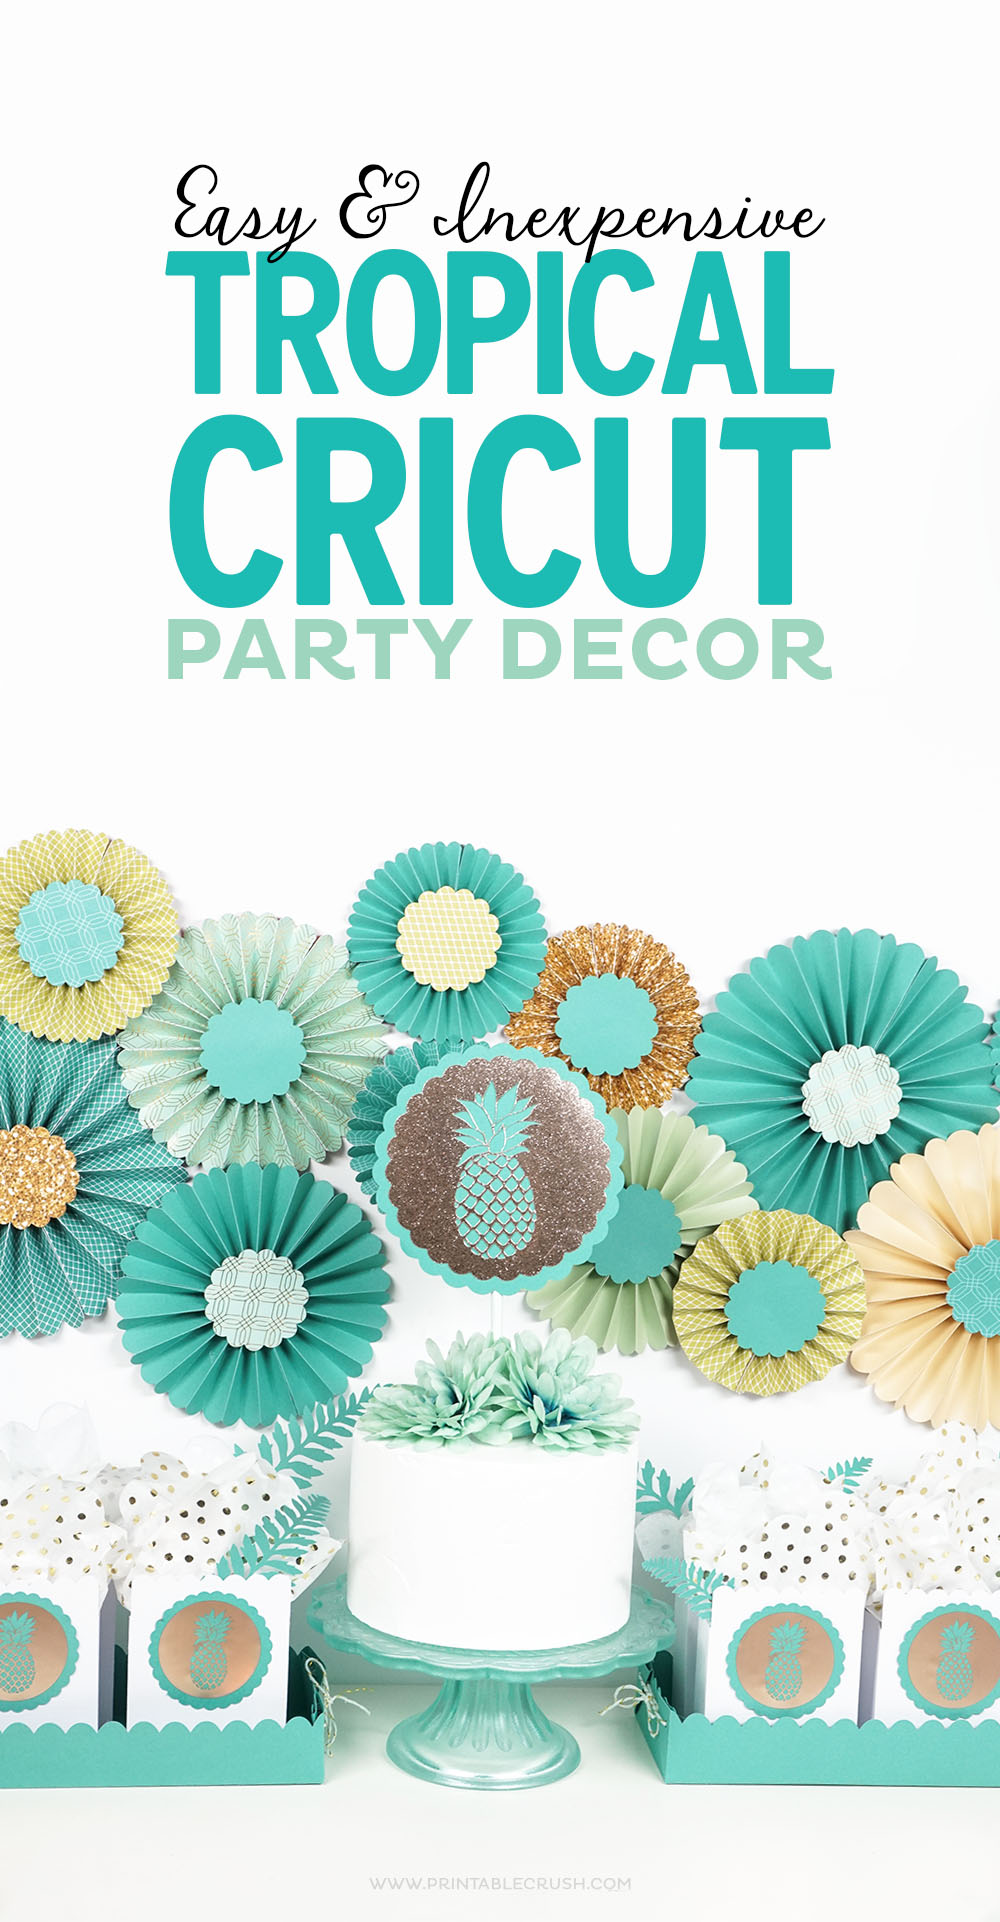 With the purchase of the new Martha Stewart Cricut® Explore Air™ 2 Special Edition, you'll get some gorgeous Tropical Cricut Party Decor graphics!